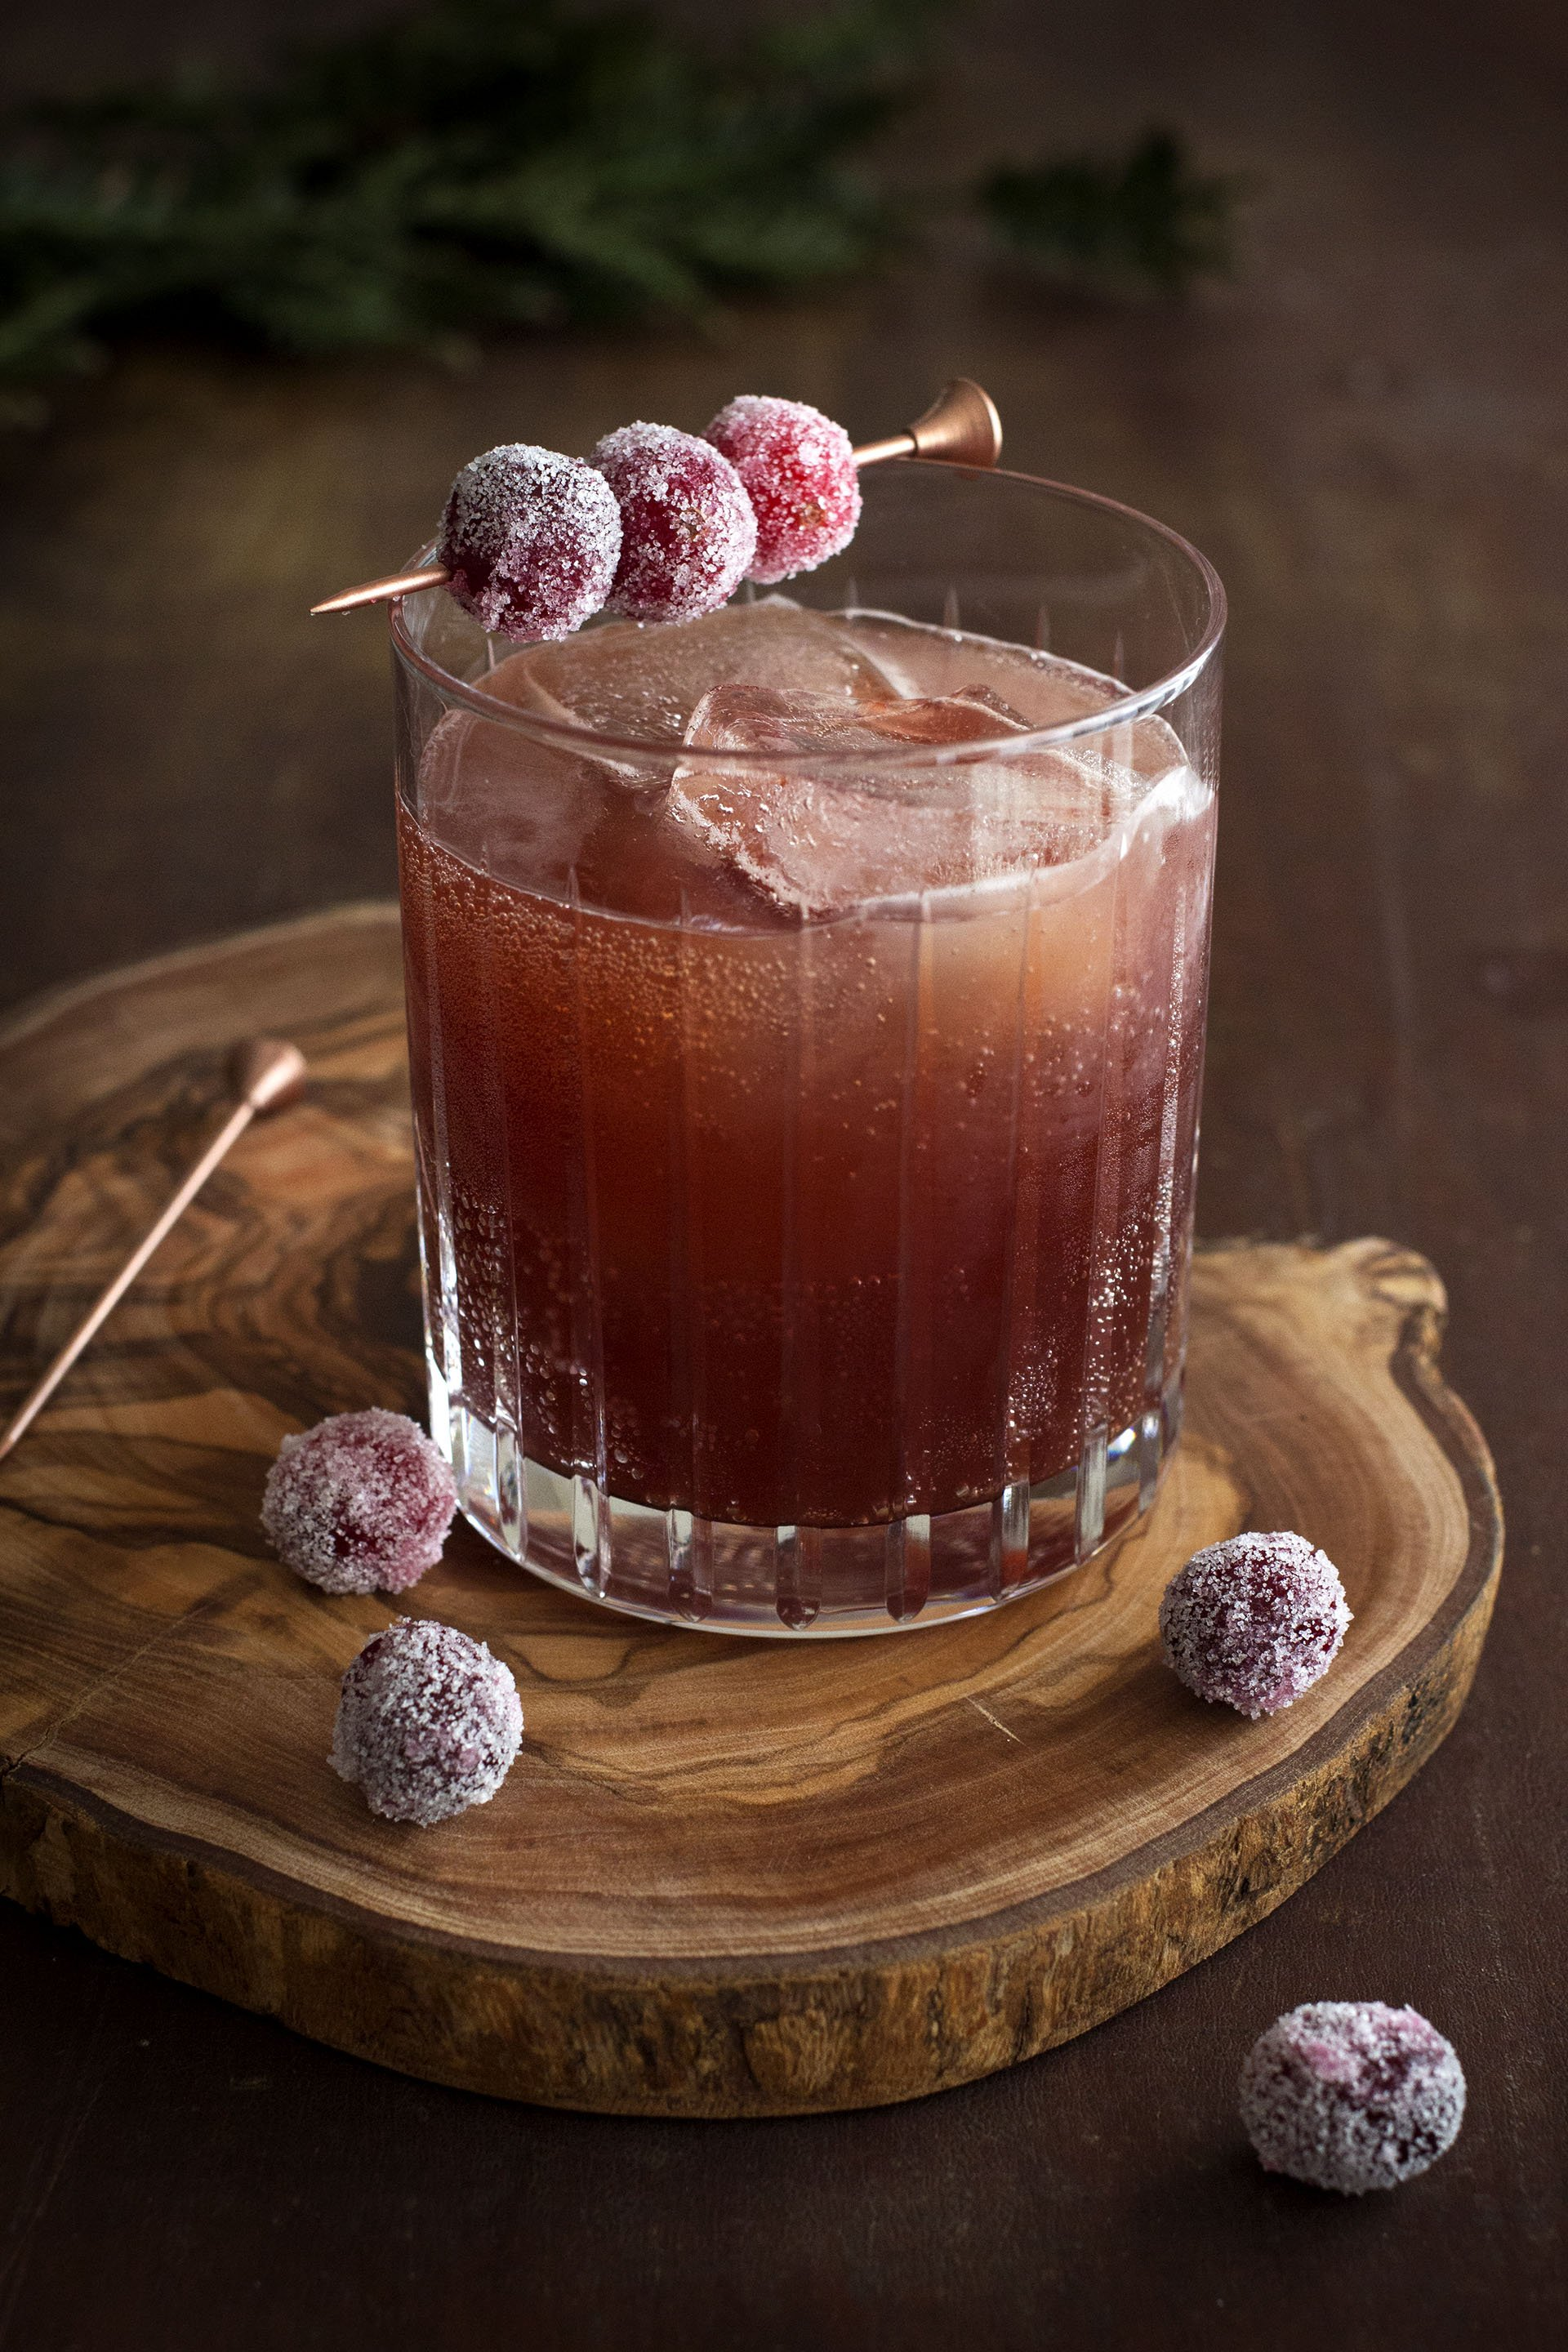 Cranberry Shrub w/ Douglas Fir from Shrub & Co via HonestlyYUM